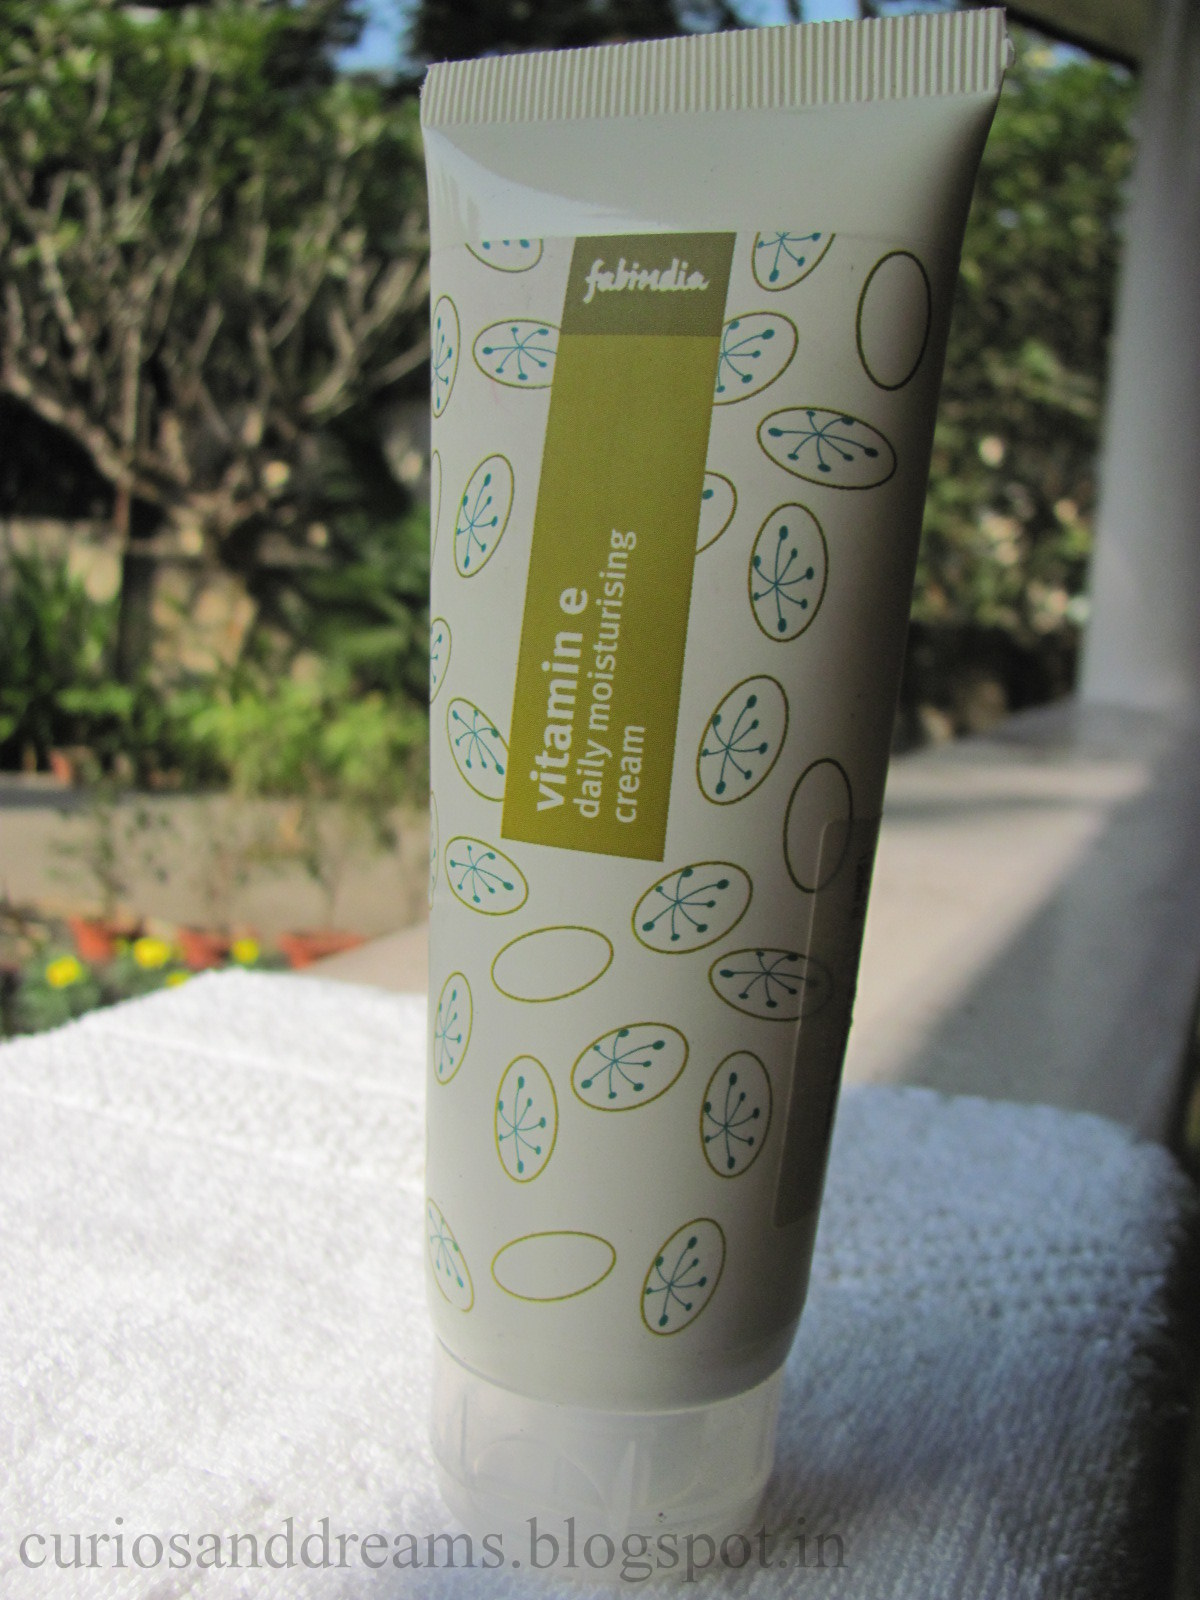 Fabindia Vitamin E Daily Moisturising Cream Review